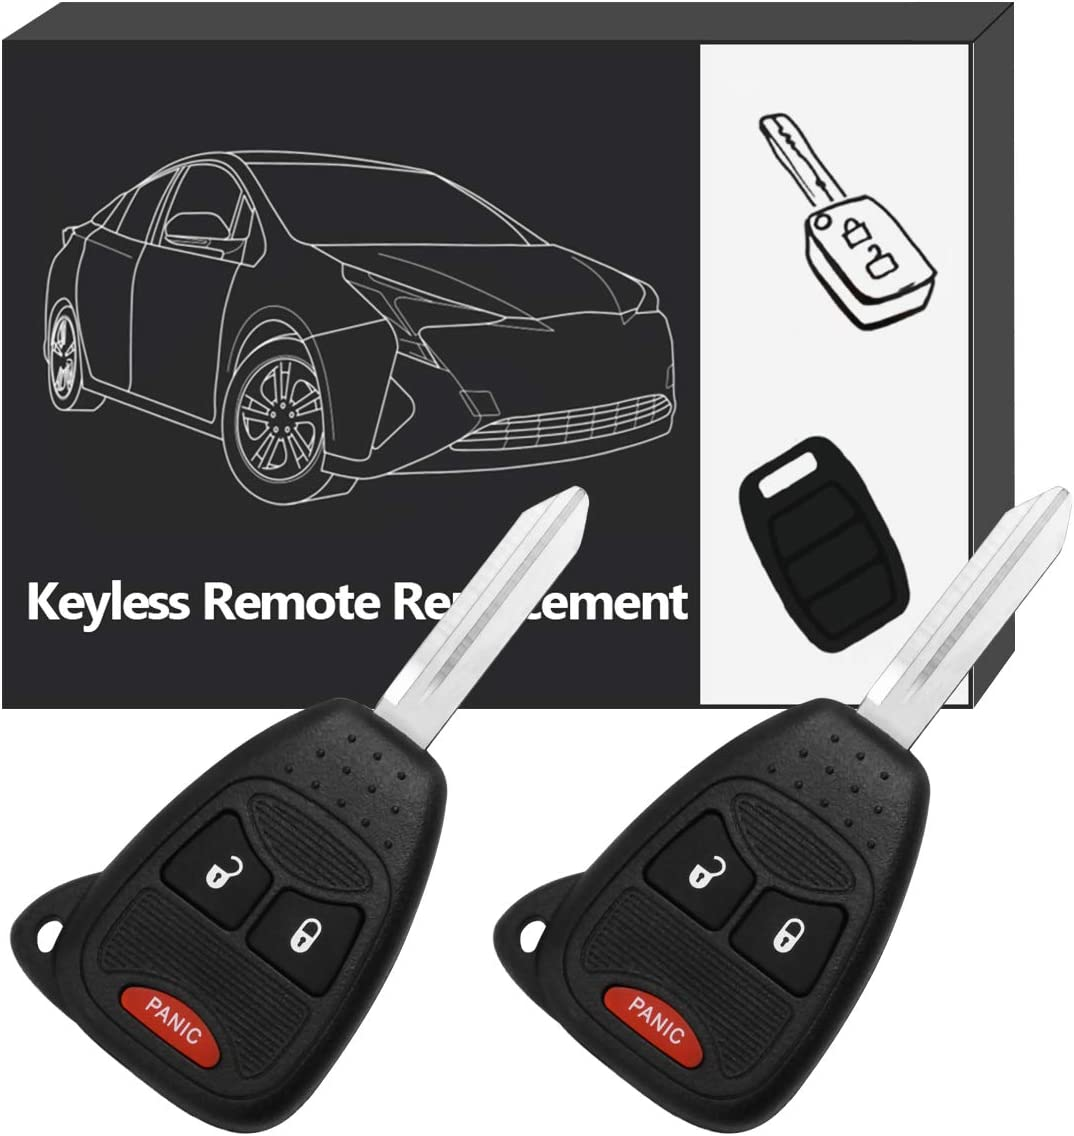 YITAMOTOR Uncut Ignition 3 Button Remote Head Key Compatible for 2006-2015 Jeep Wrangler Key Fob Replacement for OHT692427AA KOBDT04A